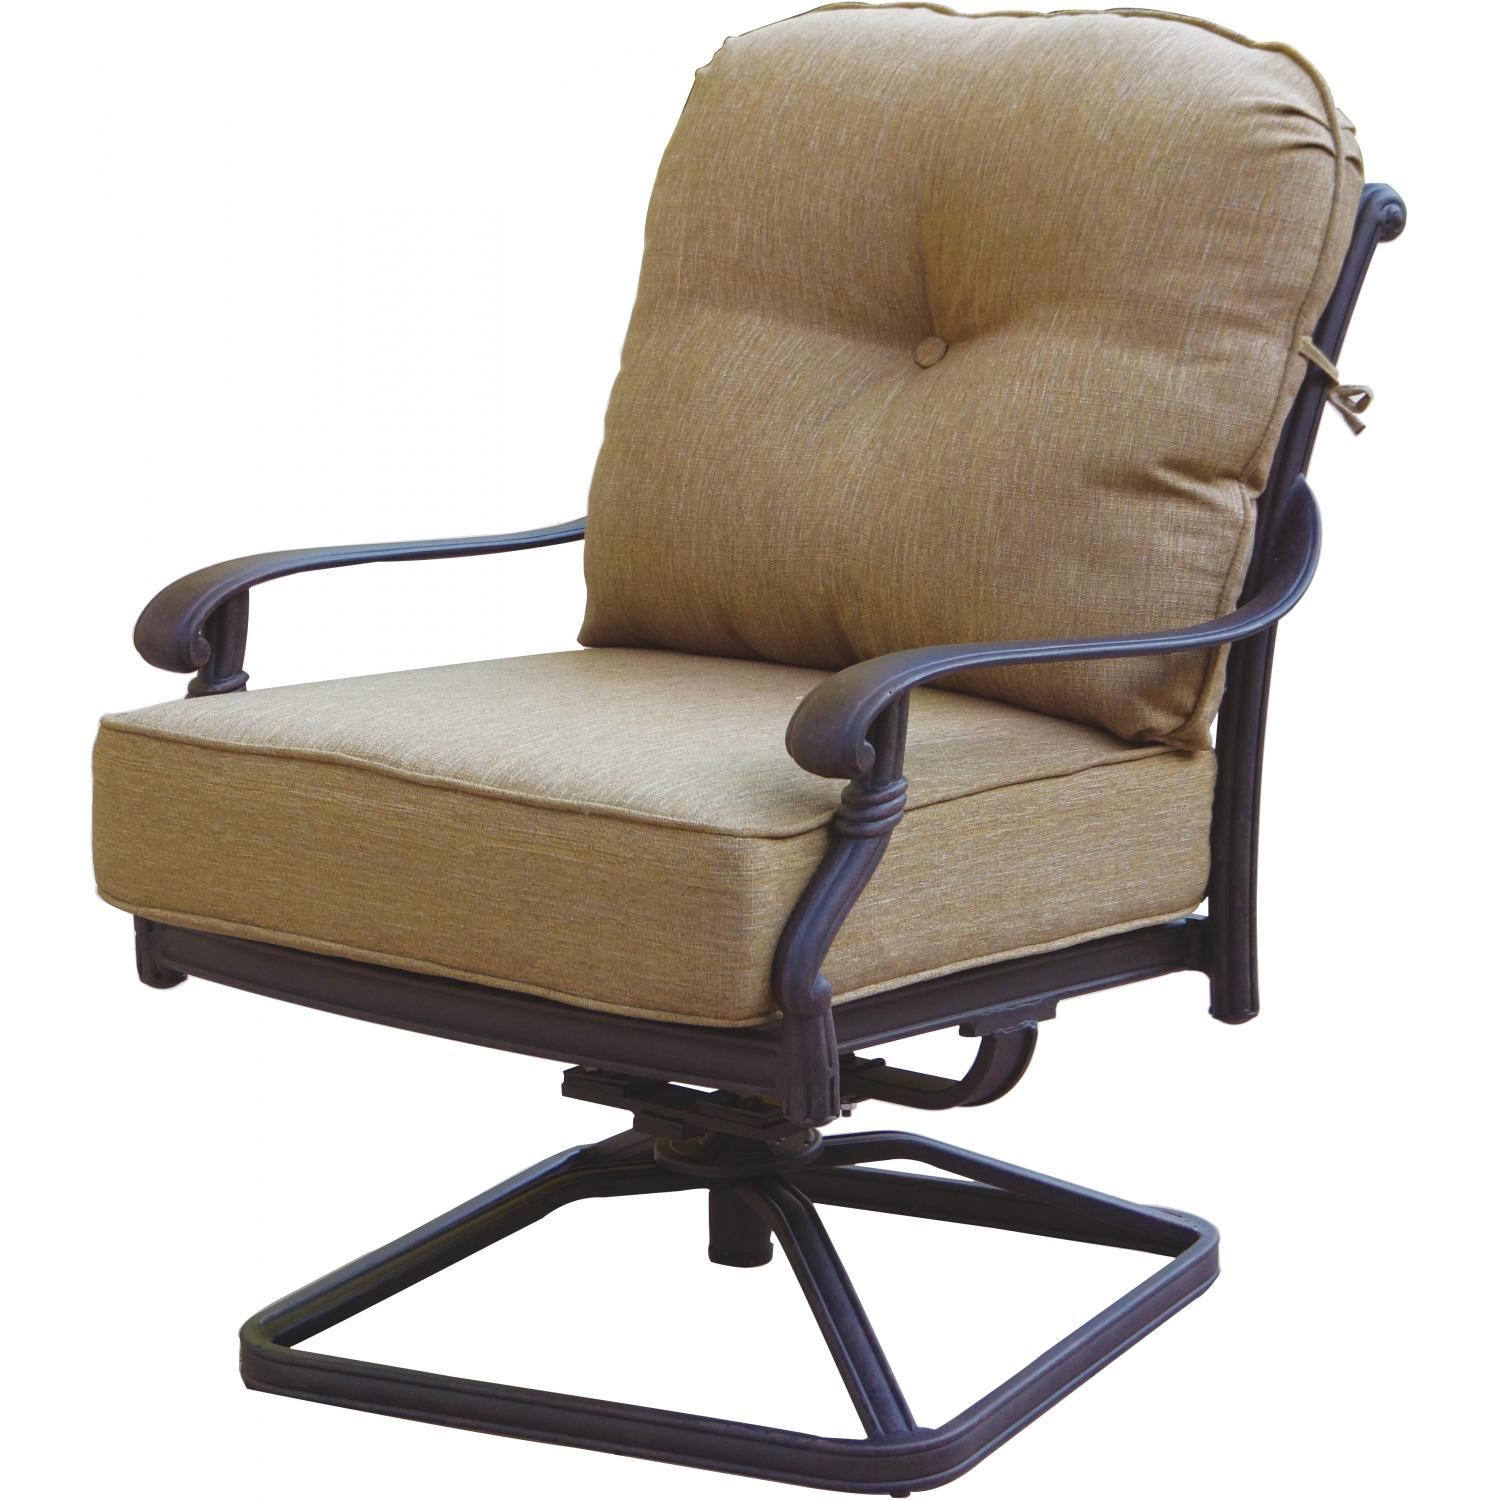 lovely swivel patio chairs swivel rocker patio chairs ideas family patio YPHBKBO